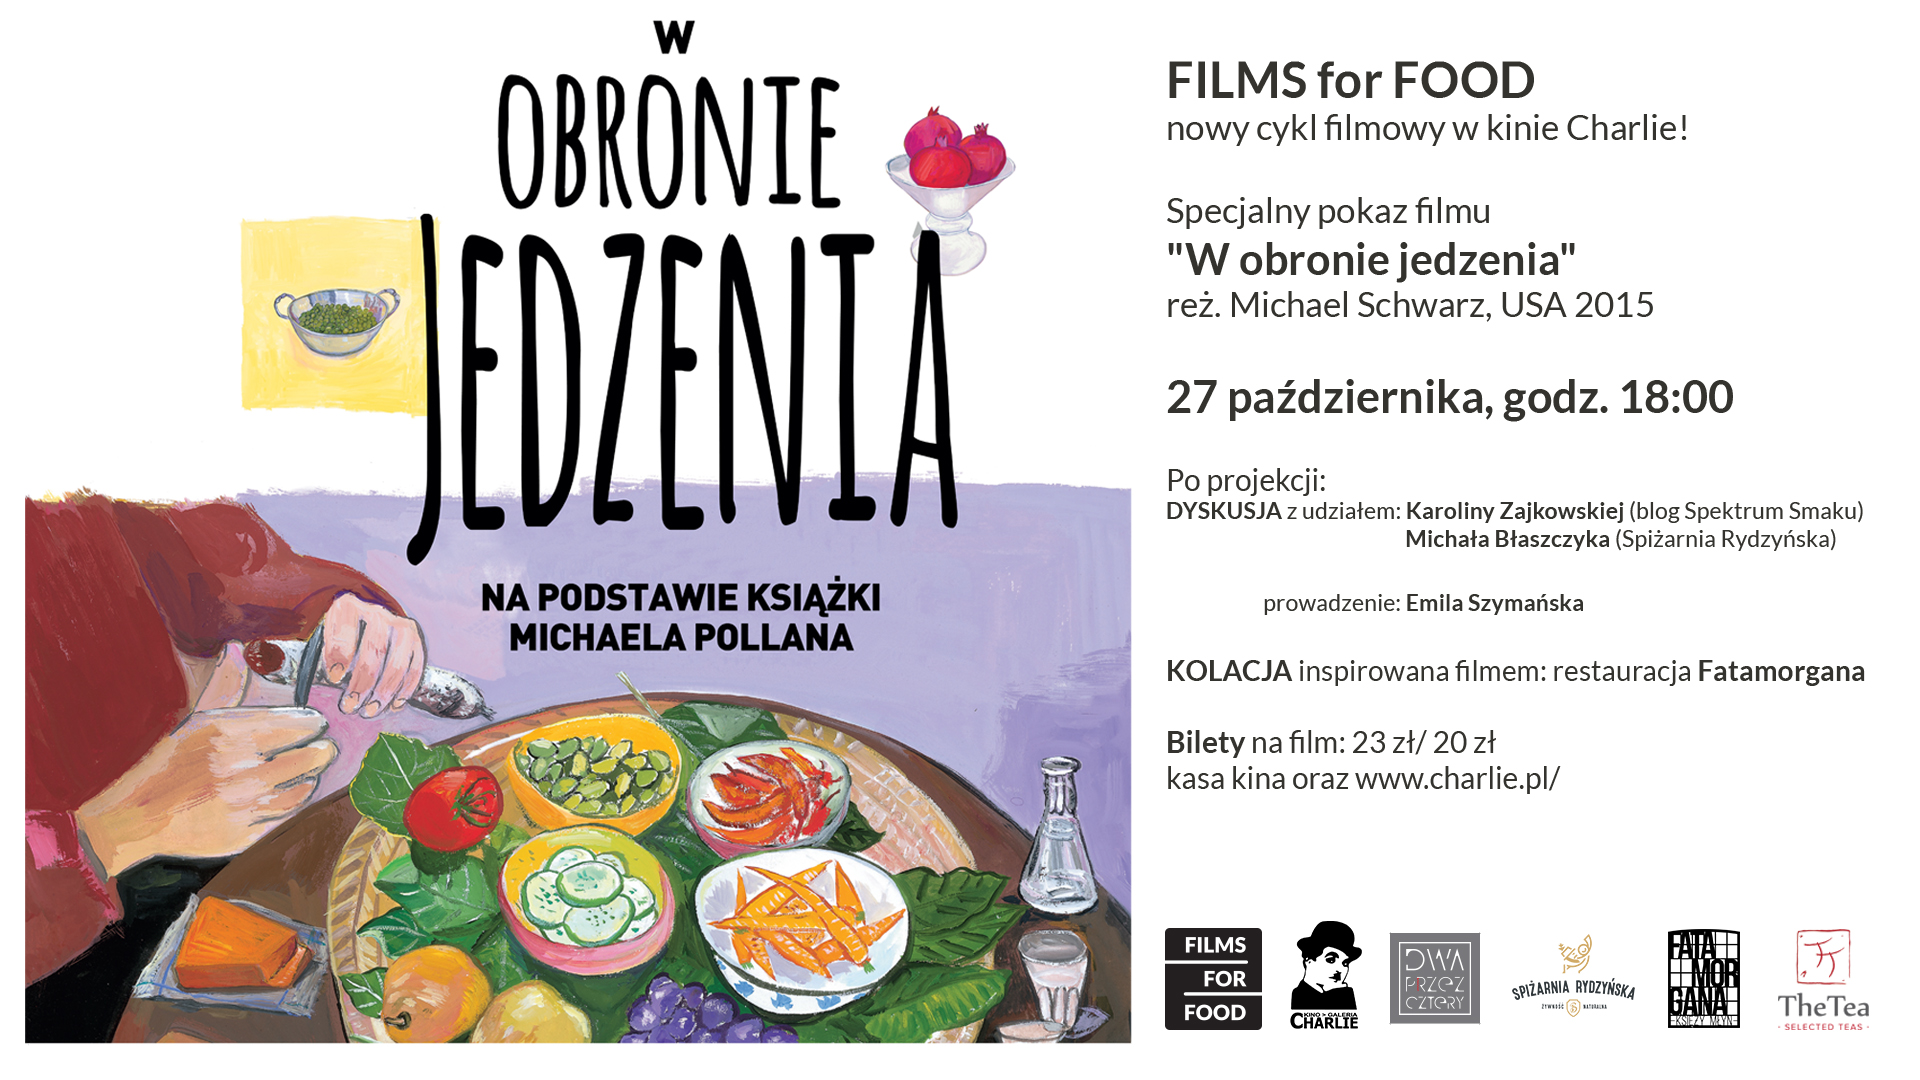 FILMS_for_FOOD_w_kinie_Charlie_GRAFIKA